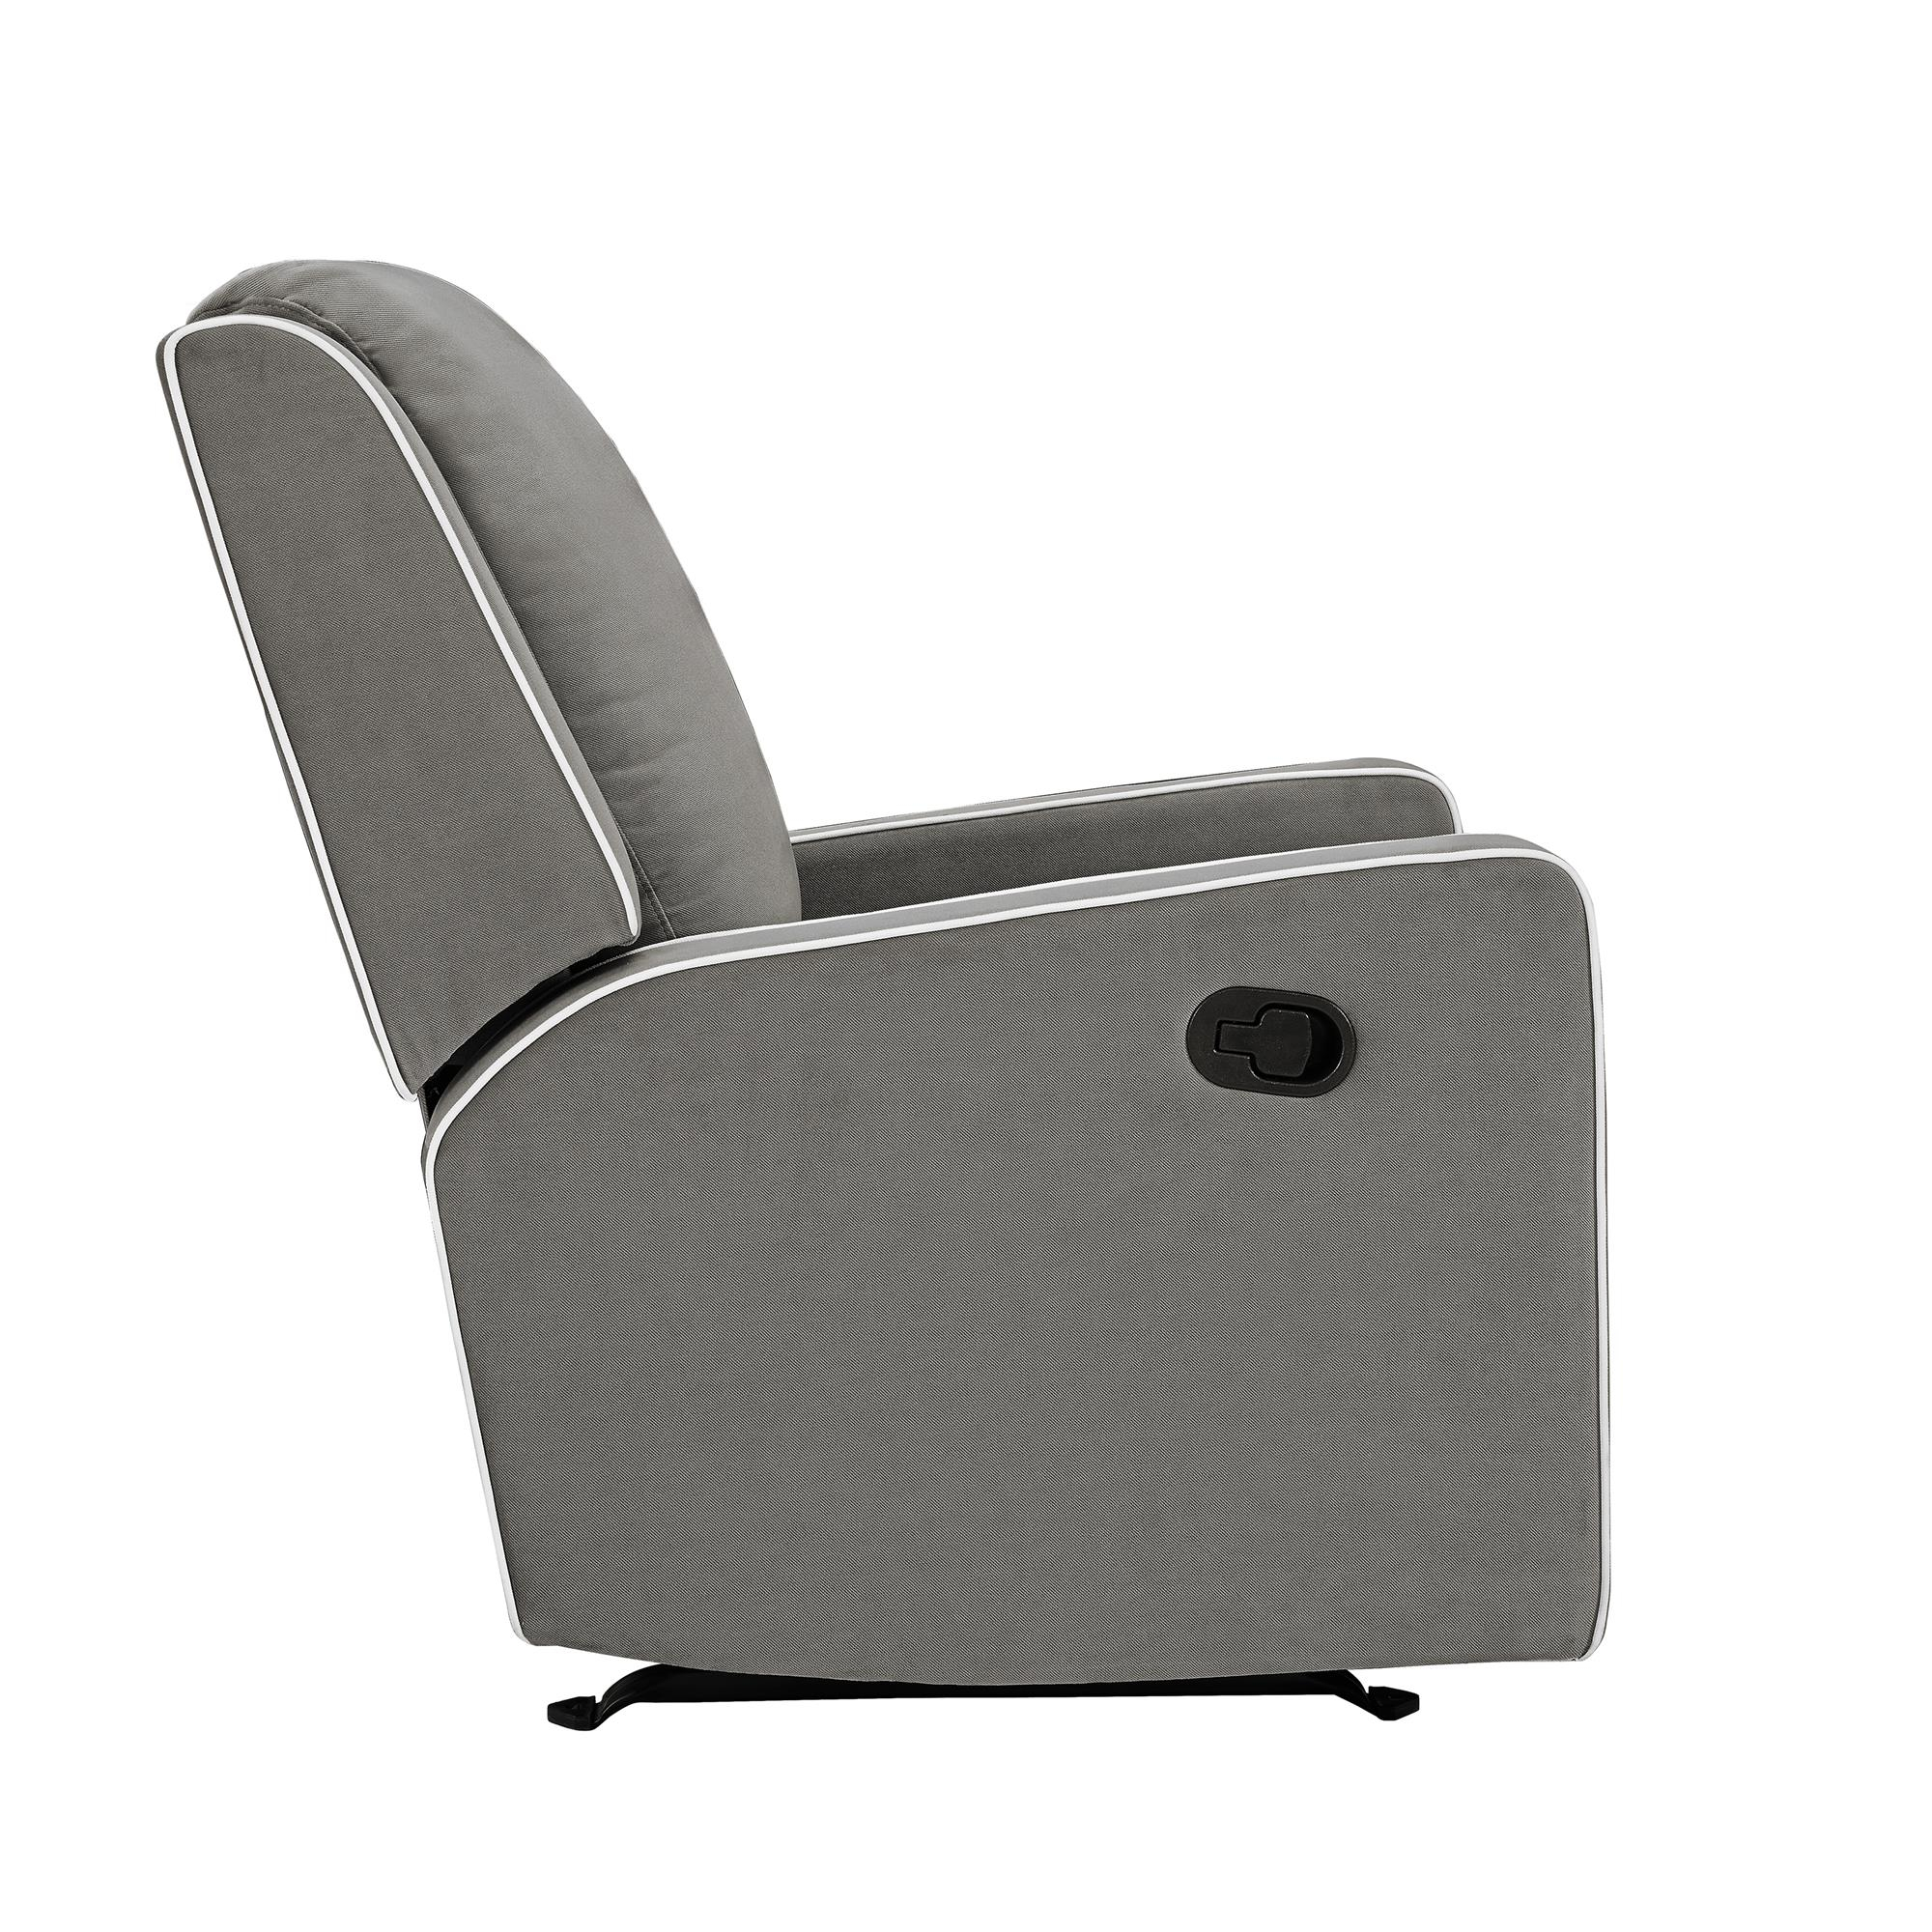 Baby Relax Robyn Rocking Recliner, Graphite Grey – Walmart In Abbey Swivel Glider Recliners (View 13 of 25)